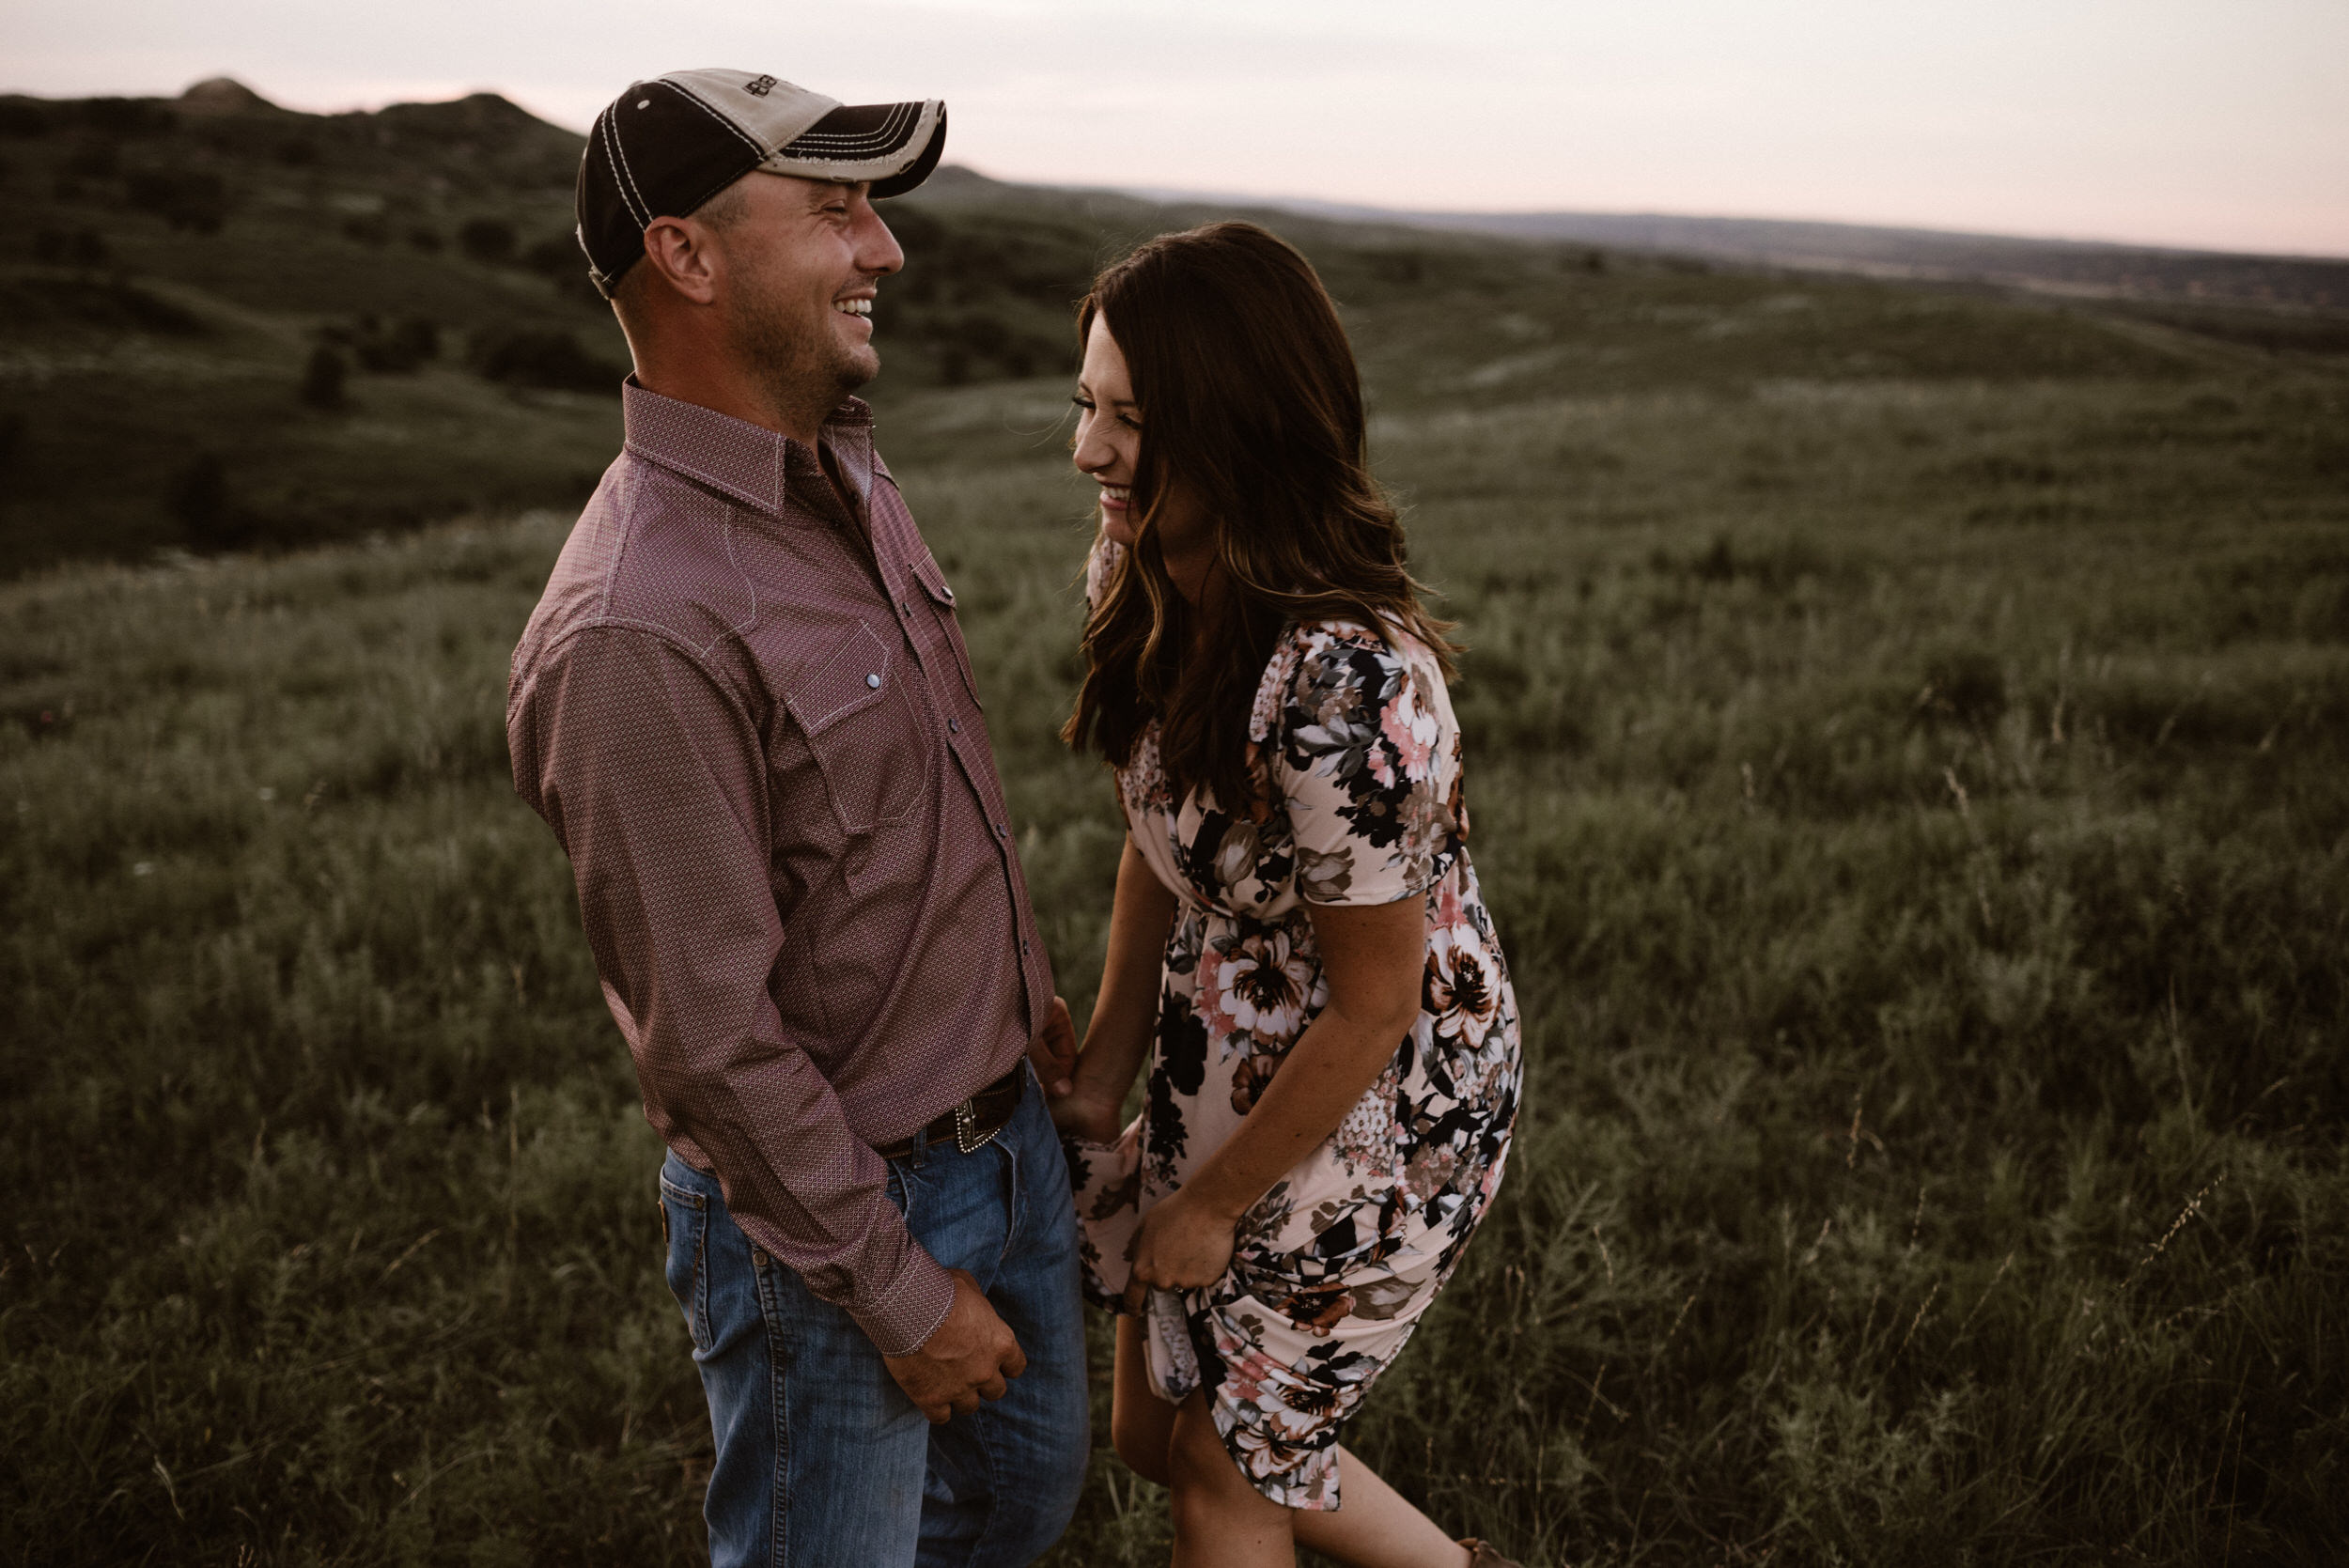 Lynch Nebraska Engagement Session Kaylie Sirek Photography 17.jpg